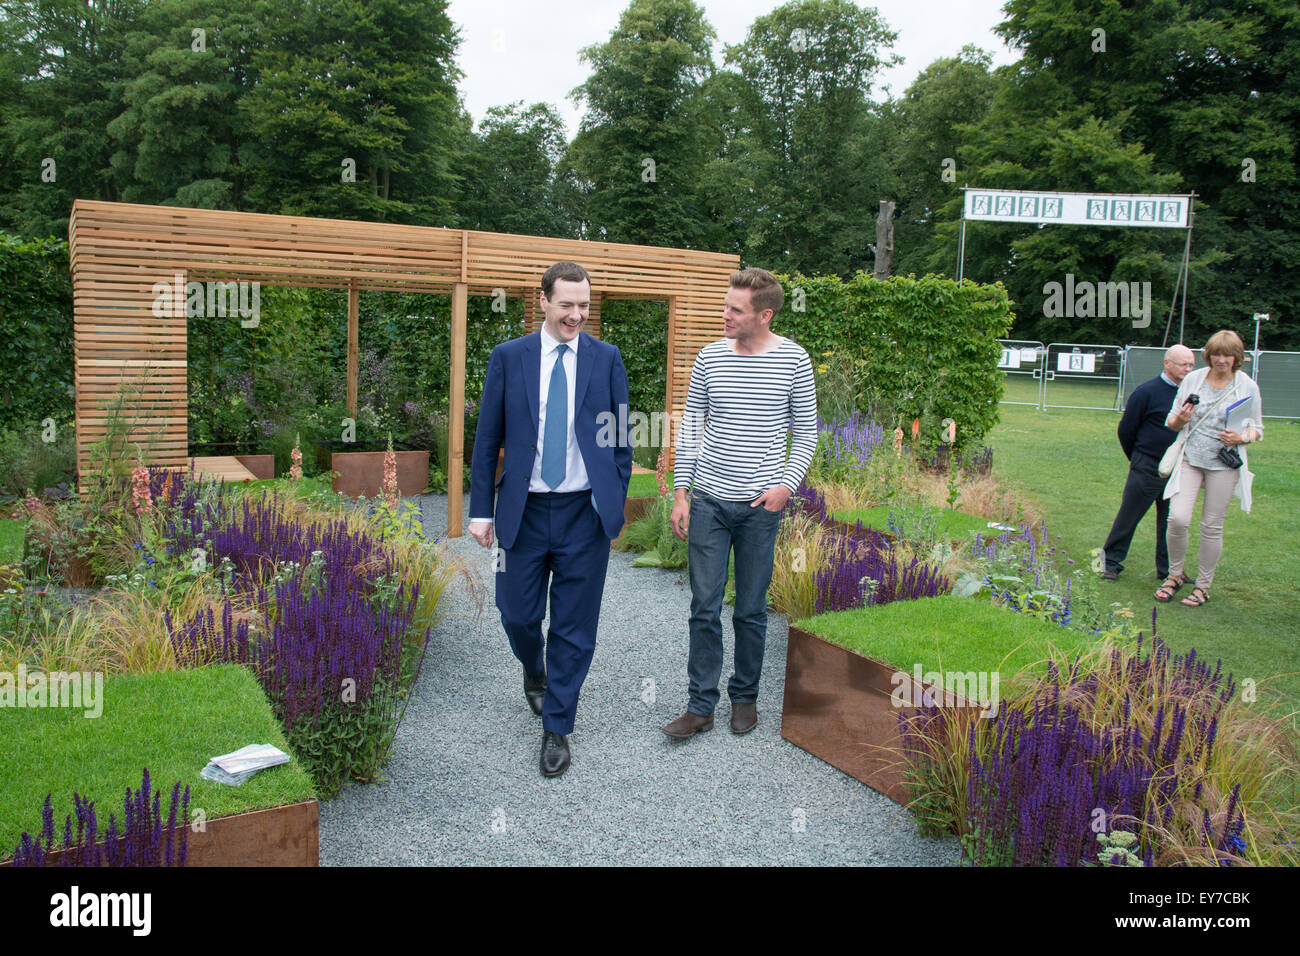 Tatton Park, Cheshire, UK. 23rd July 2015. Chancellor George Osborne at the RHS flower show, with young designer - Stock Image